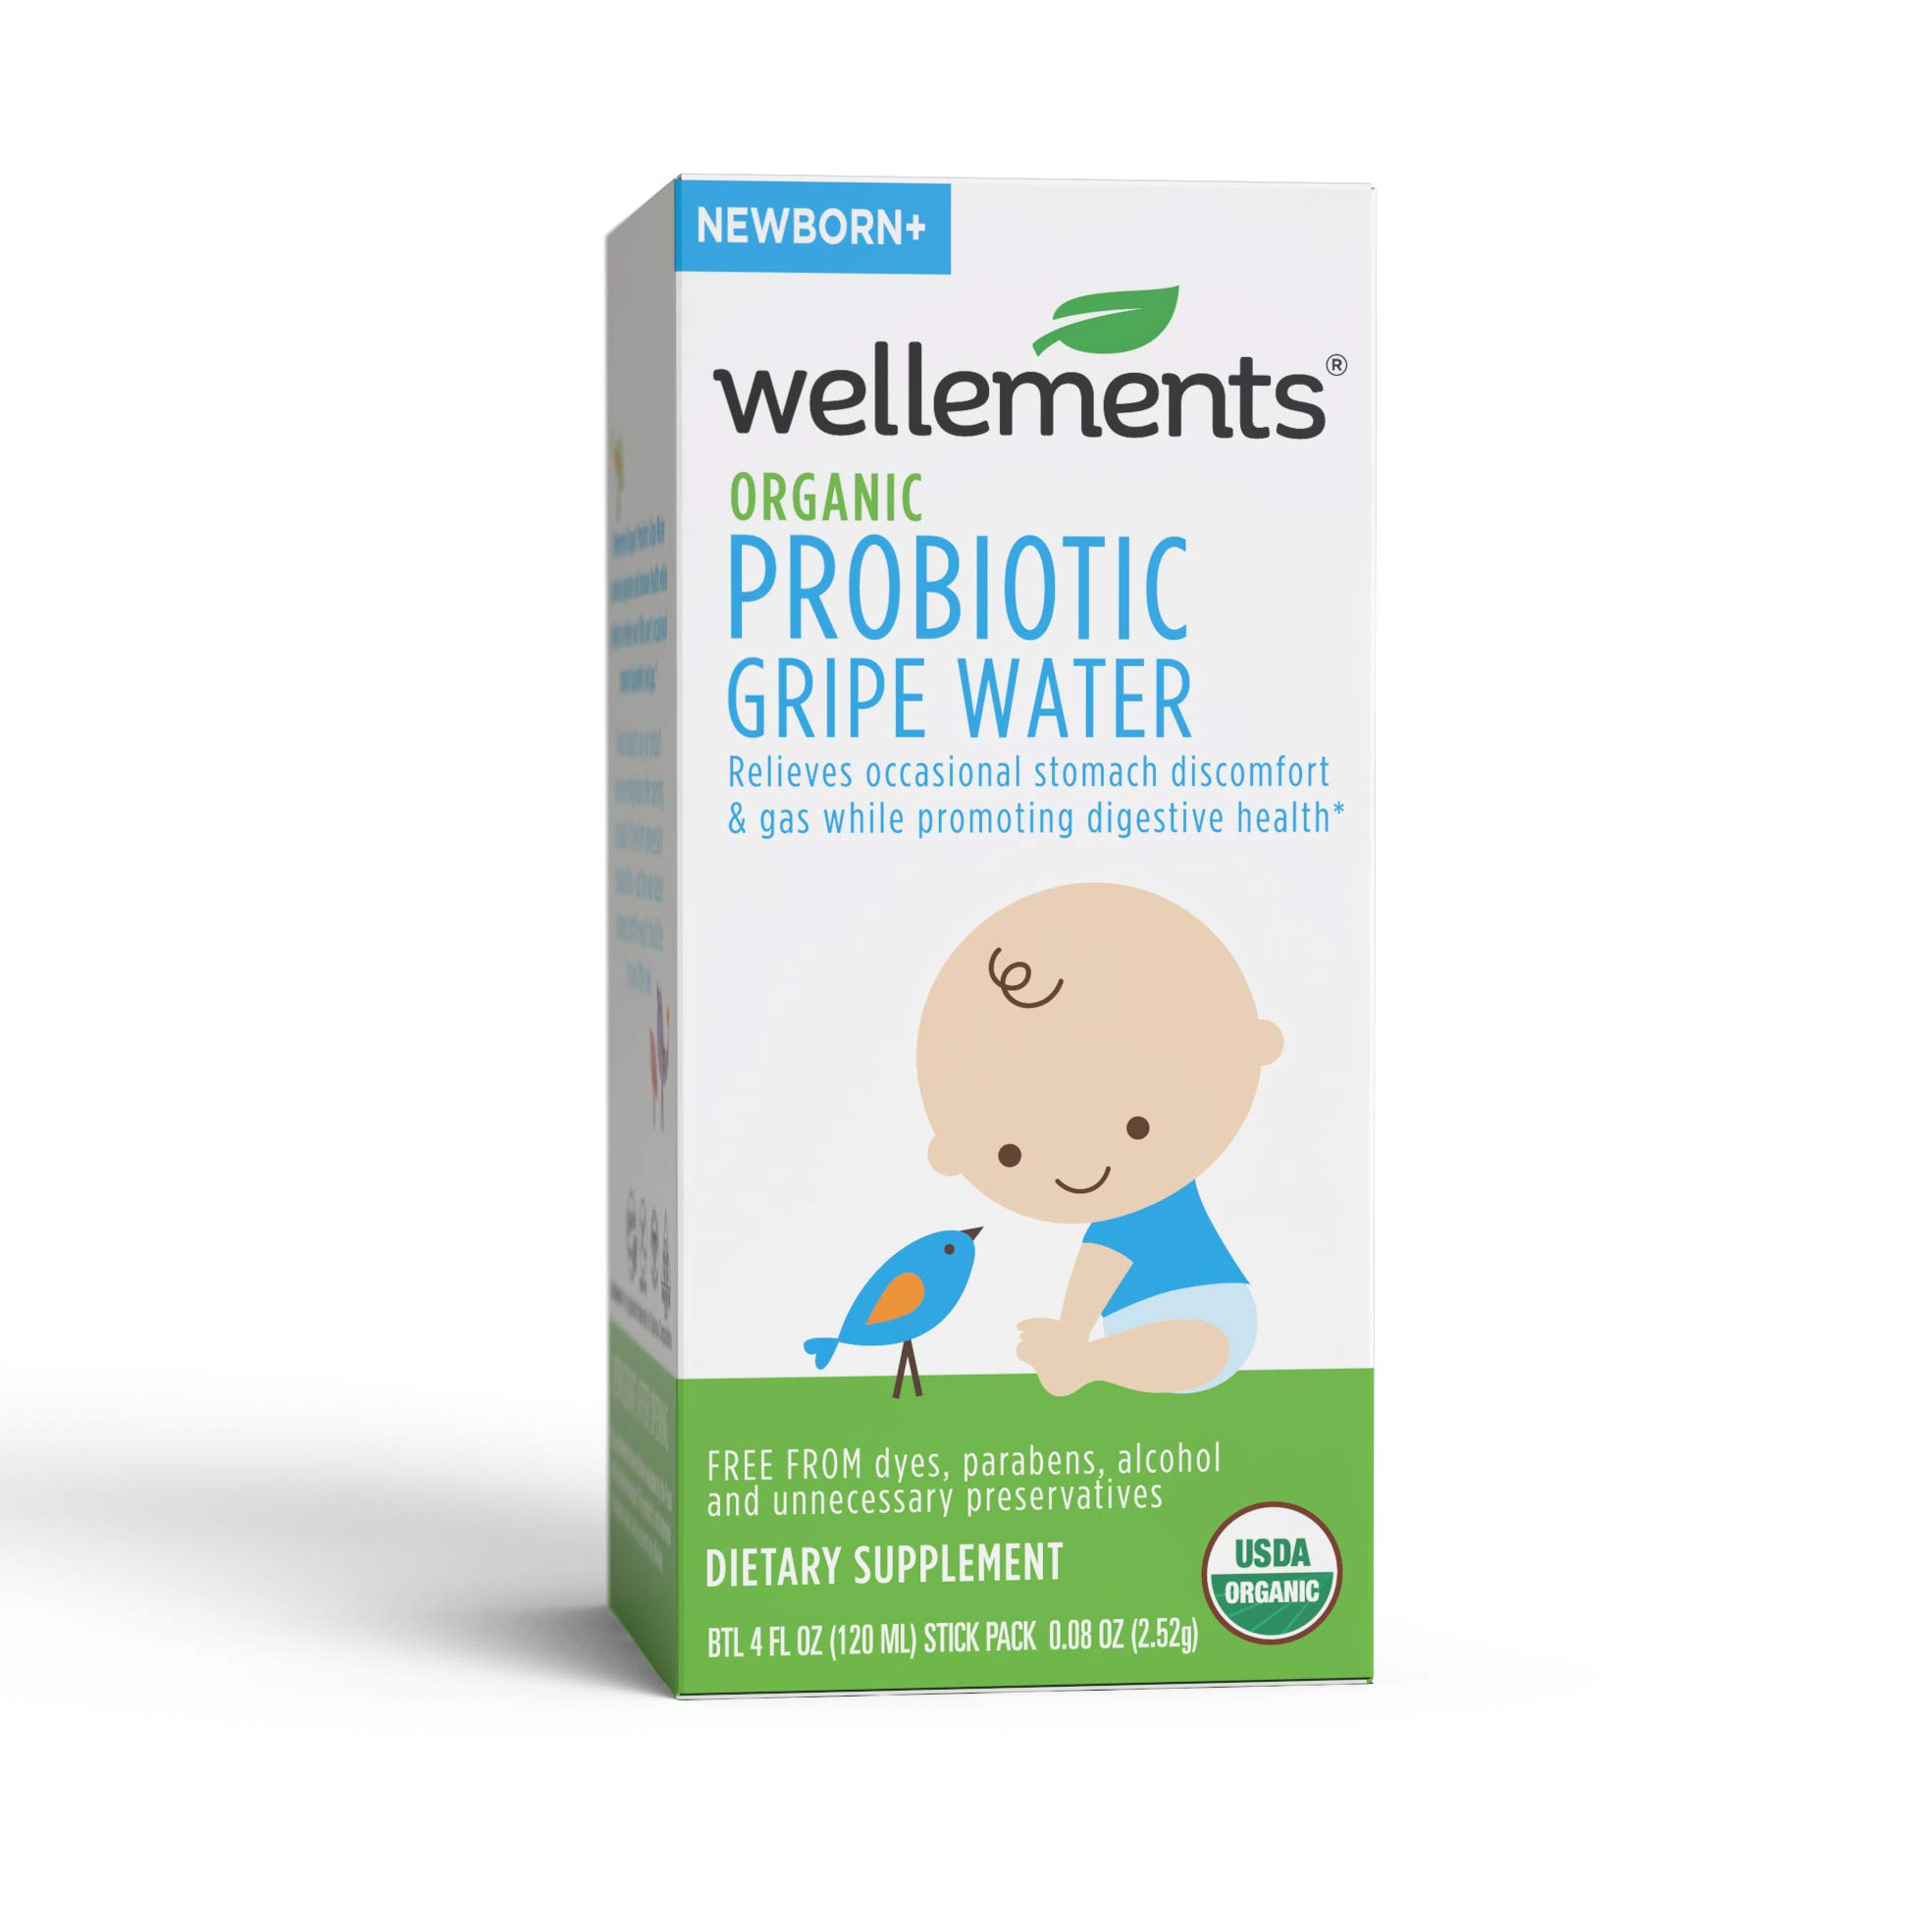 Wellements Organic Probiotic Gripe Water, 4 Fl Oz, Eases Baby's Stomach Discomfort, Digestive and Immune Support, Free From Dyes, Parabens, Alcohol, Preservatives by Wellements